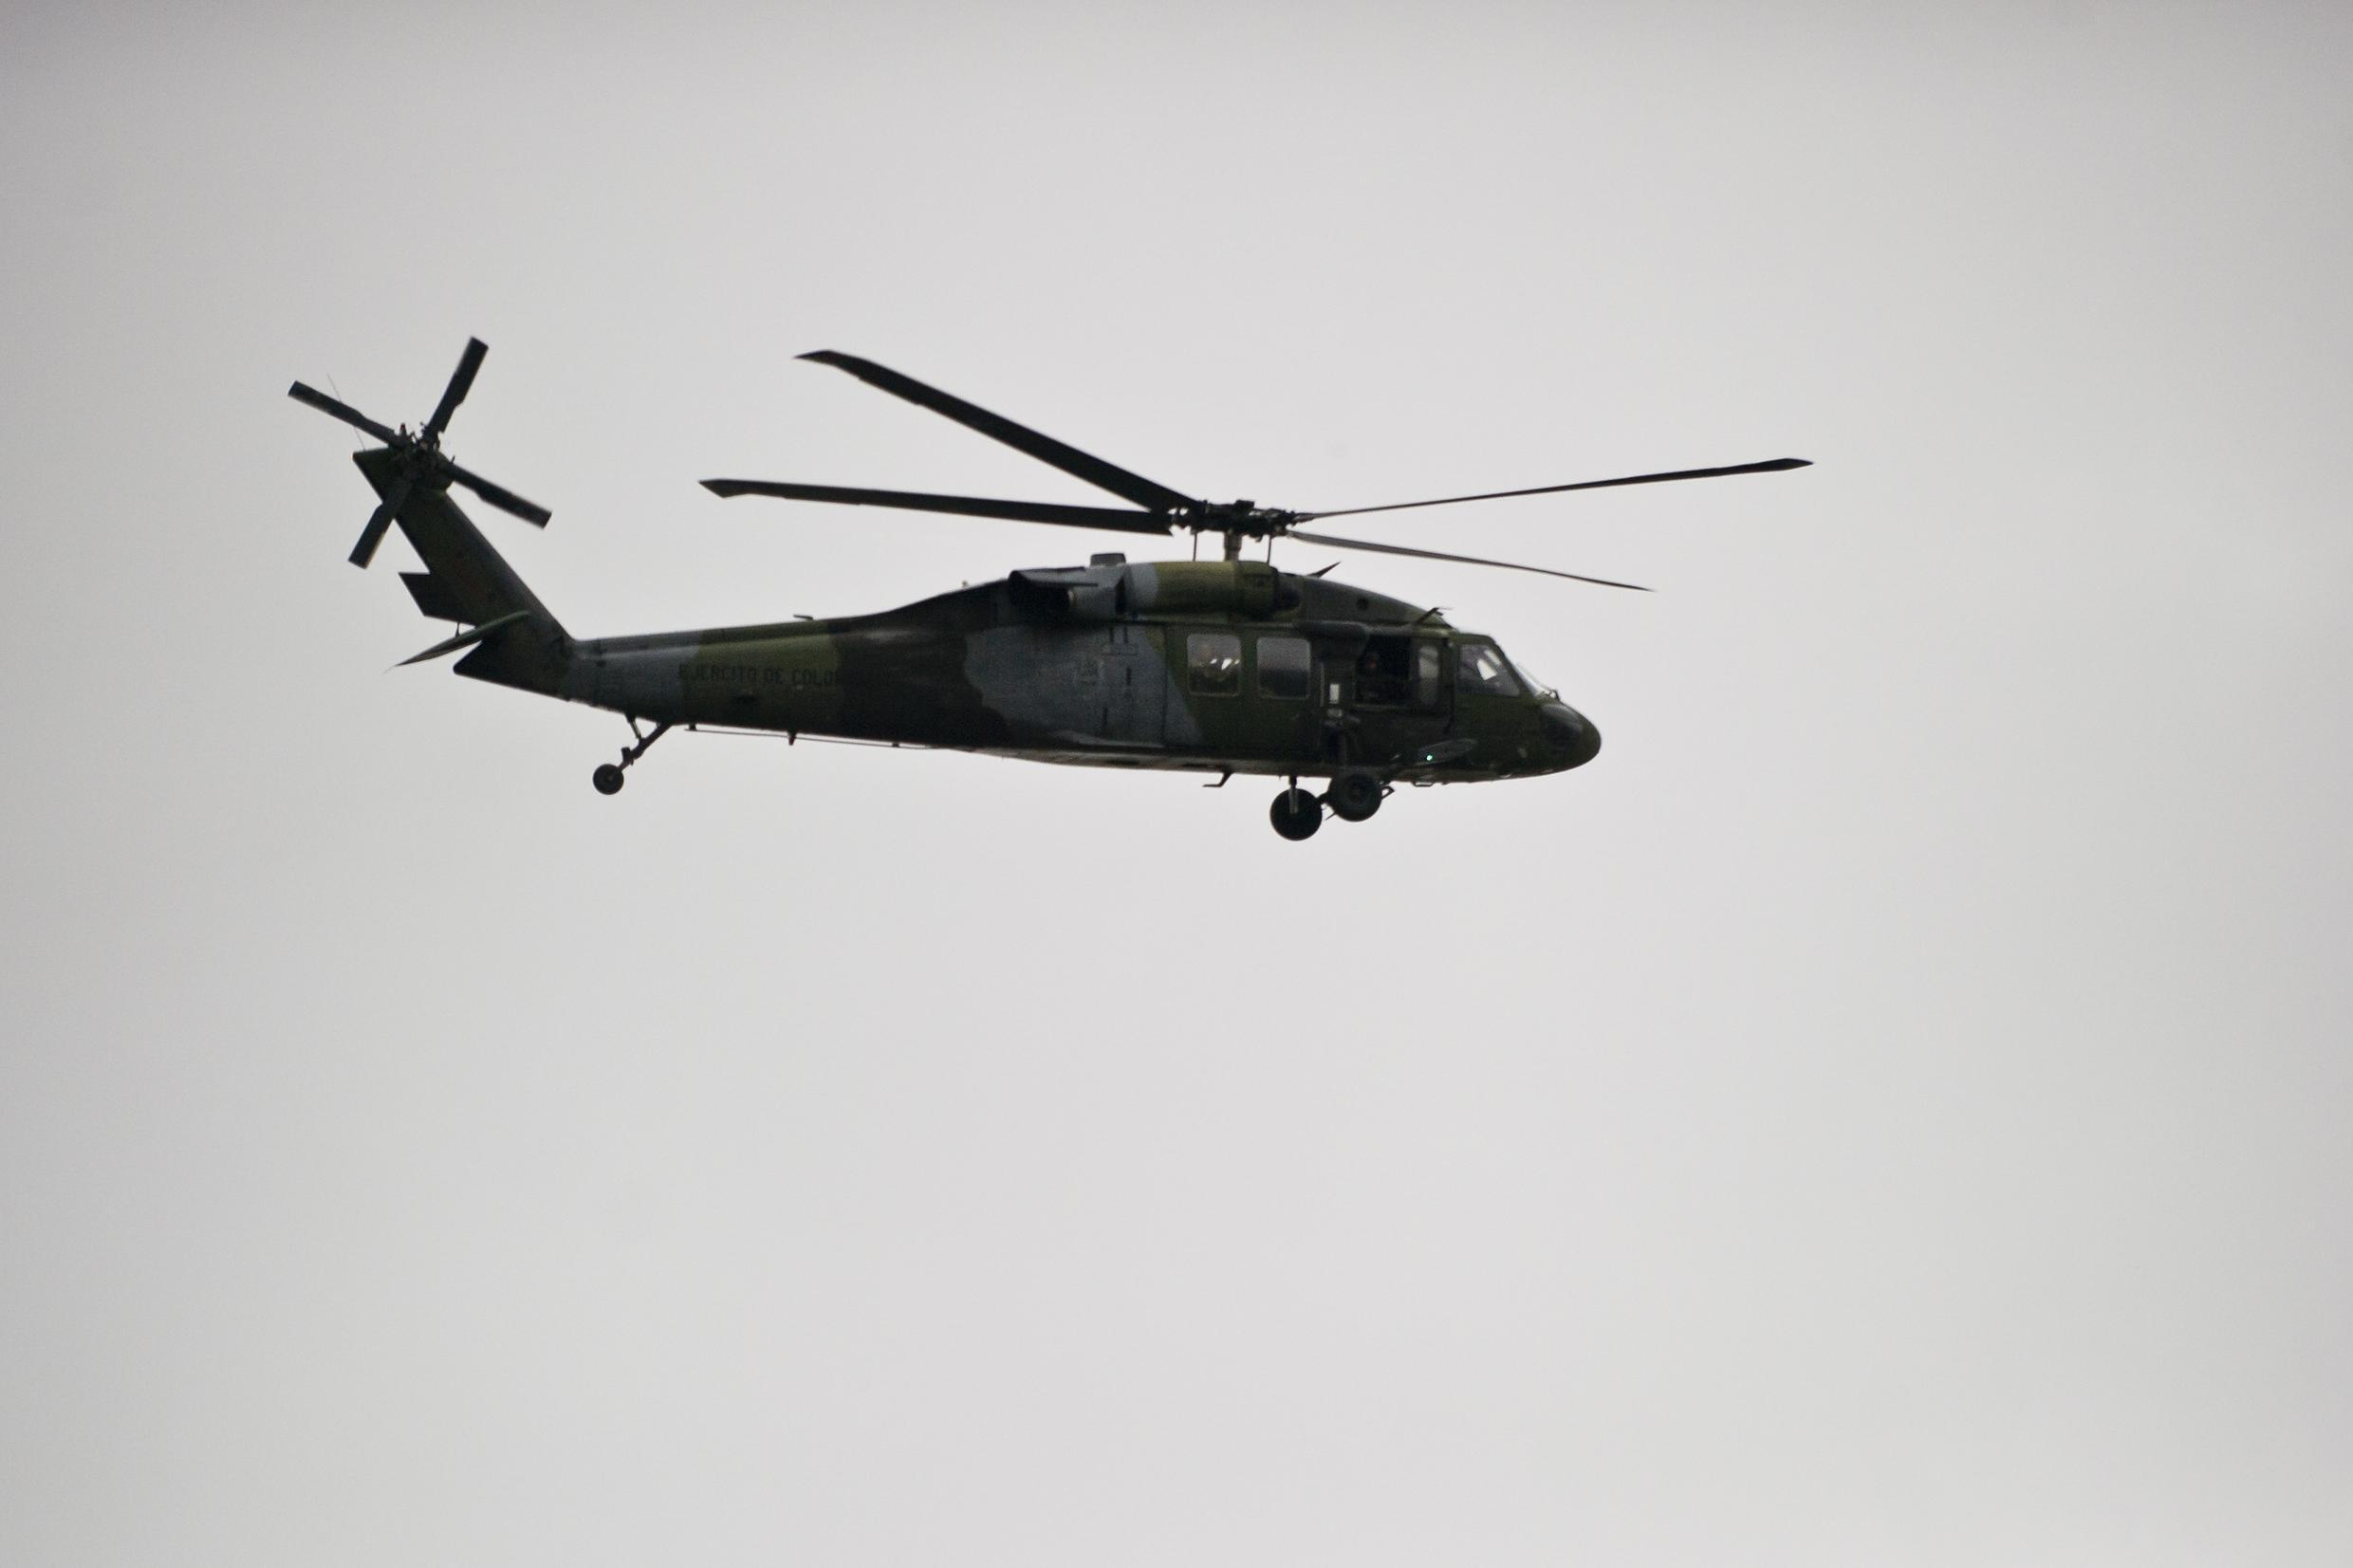 A Colombian Army Black Hawk helicopter flies over an area where a FARC guerrillas attack took place in Cali, Colombia, in April 2015